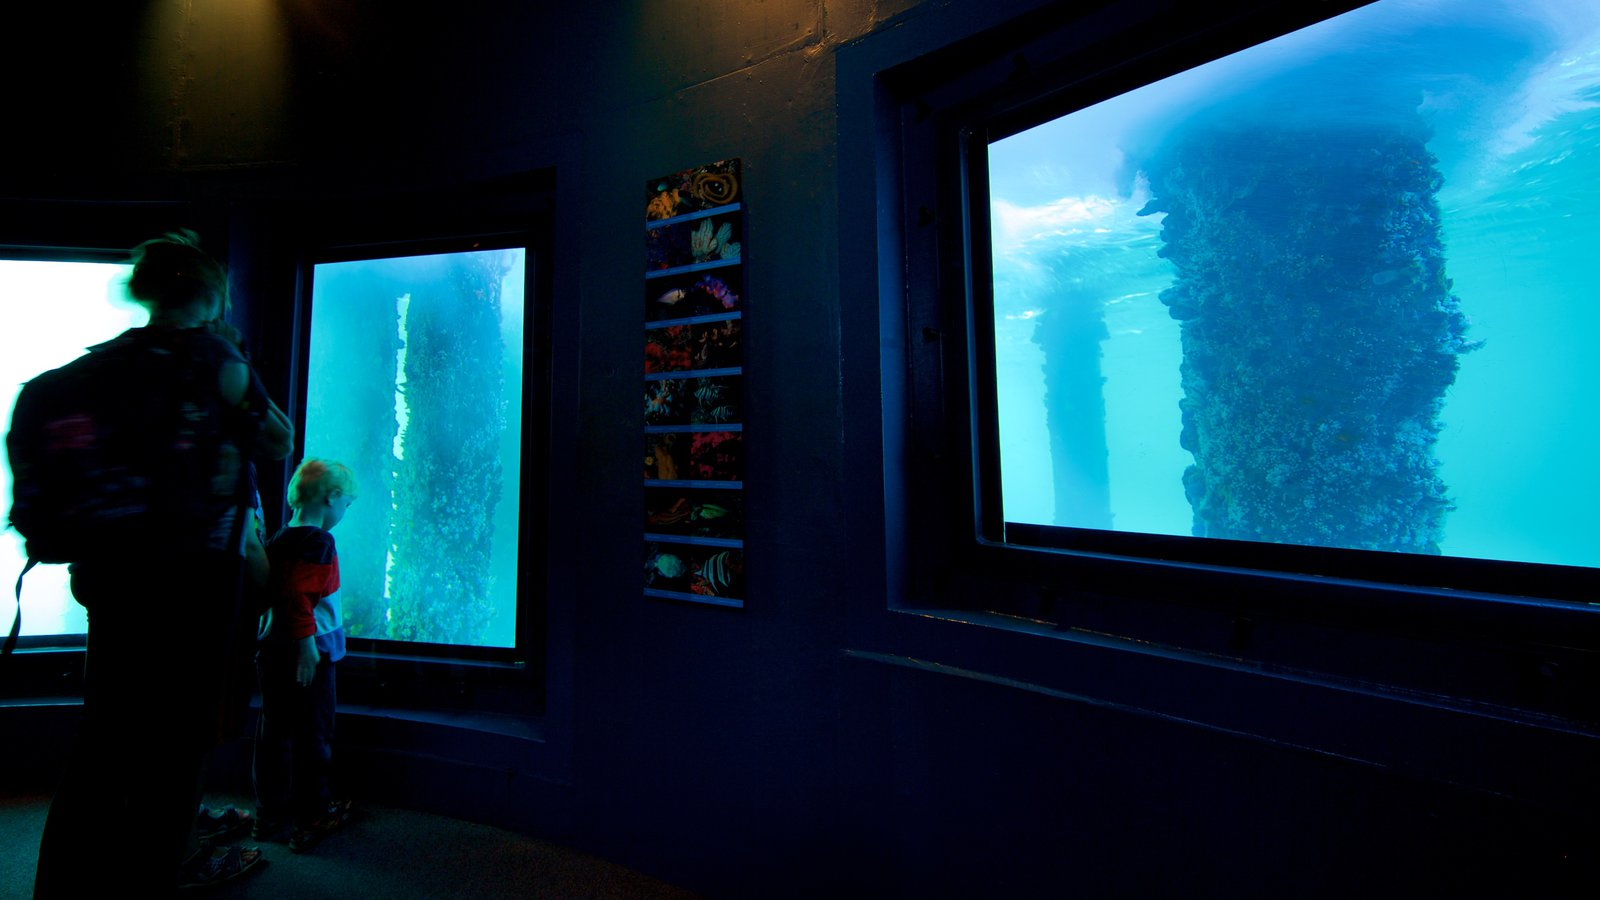 Busselton Jetty Underwater Observatory showing marine life and interior views as well as a family